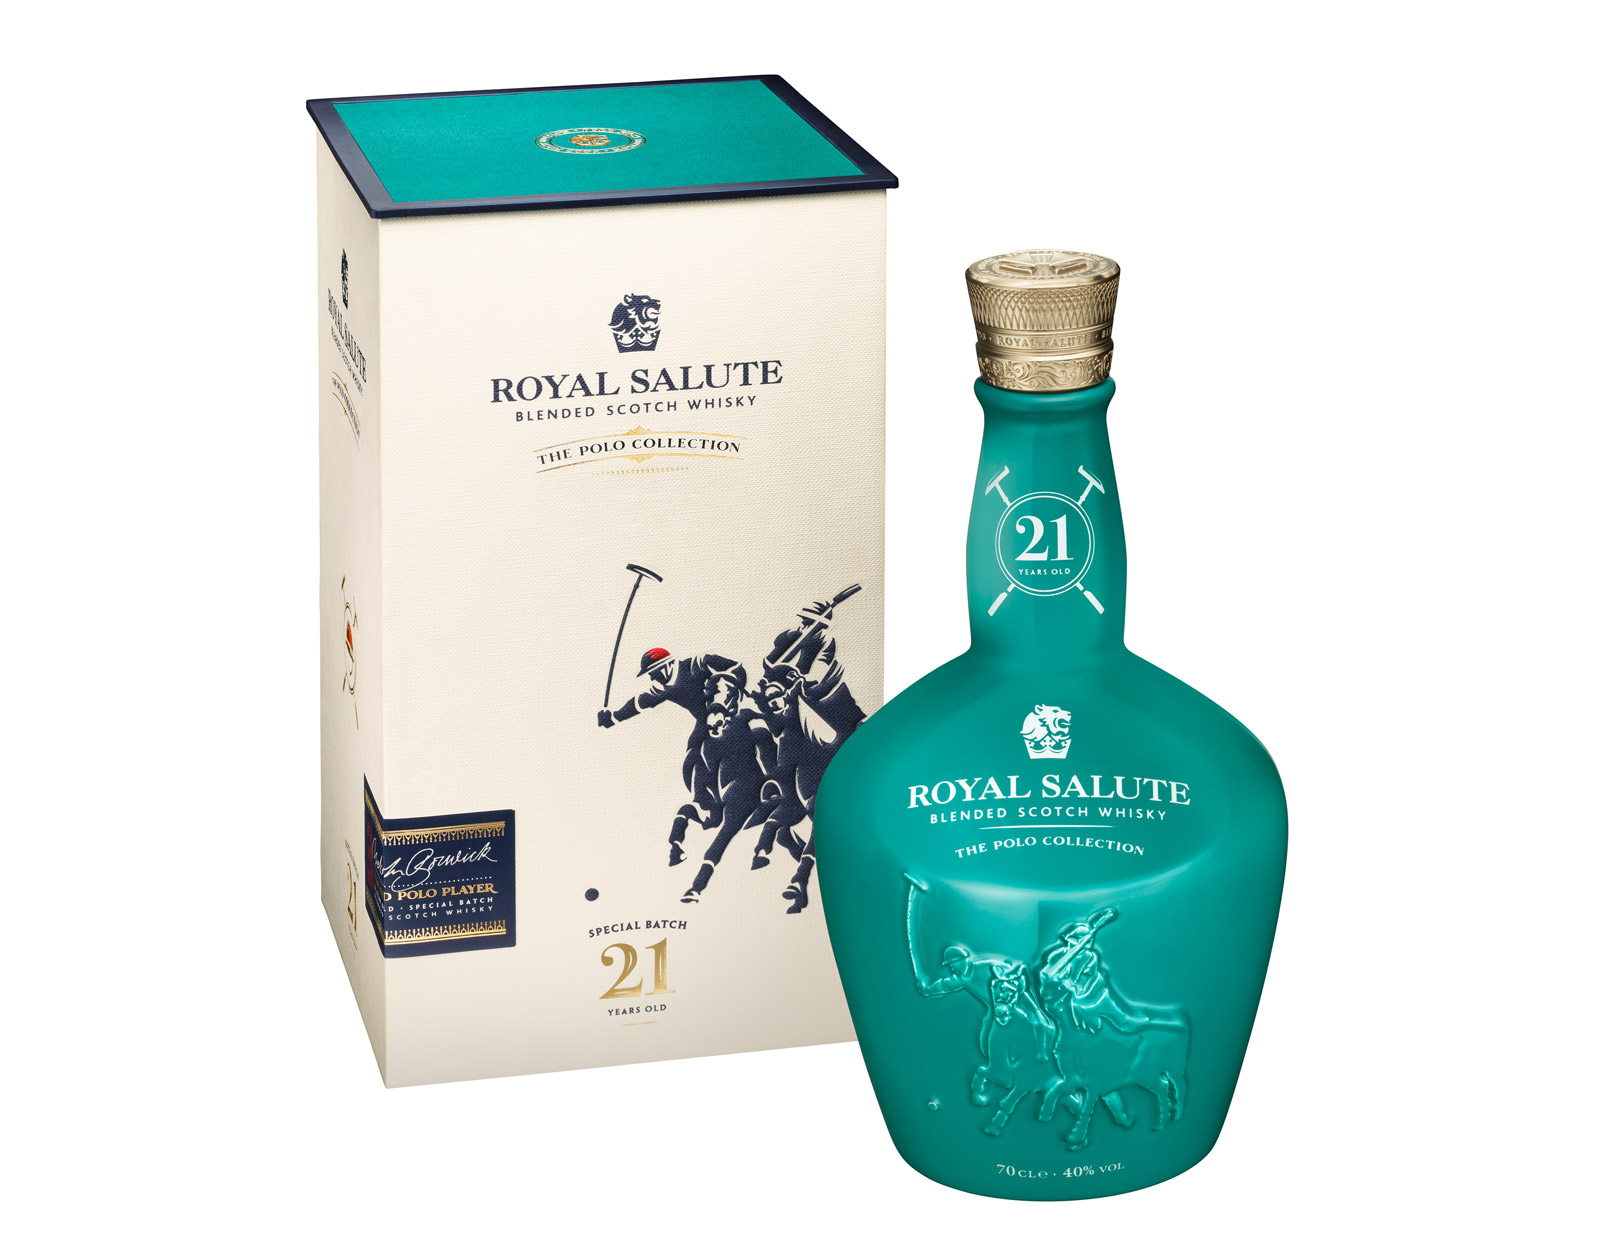 Royal Salute 21 Year Old Polo Edition Goes On Sale Worldwide 4